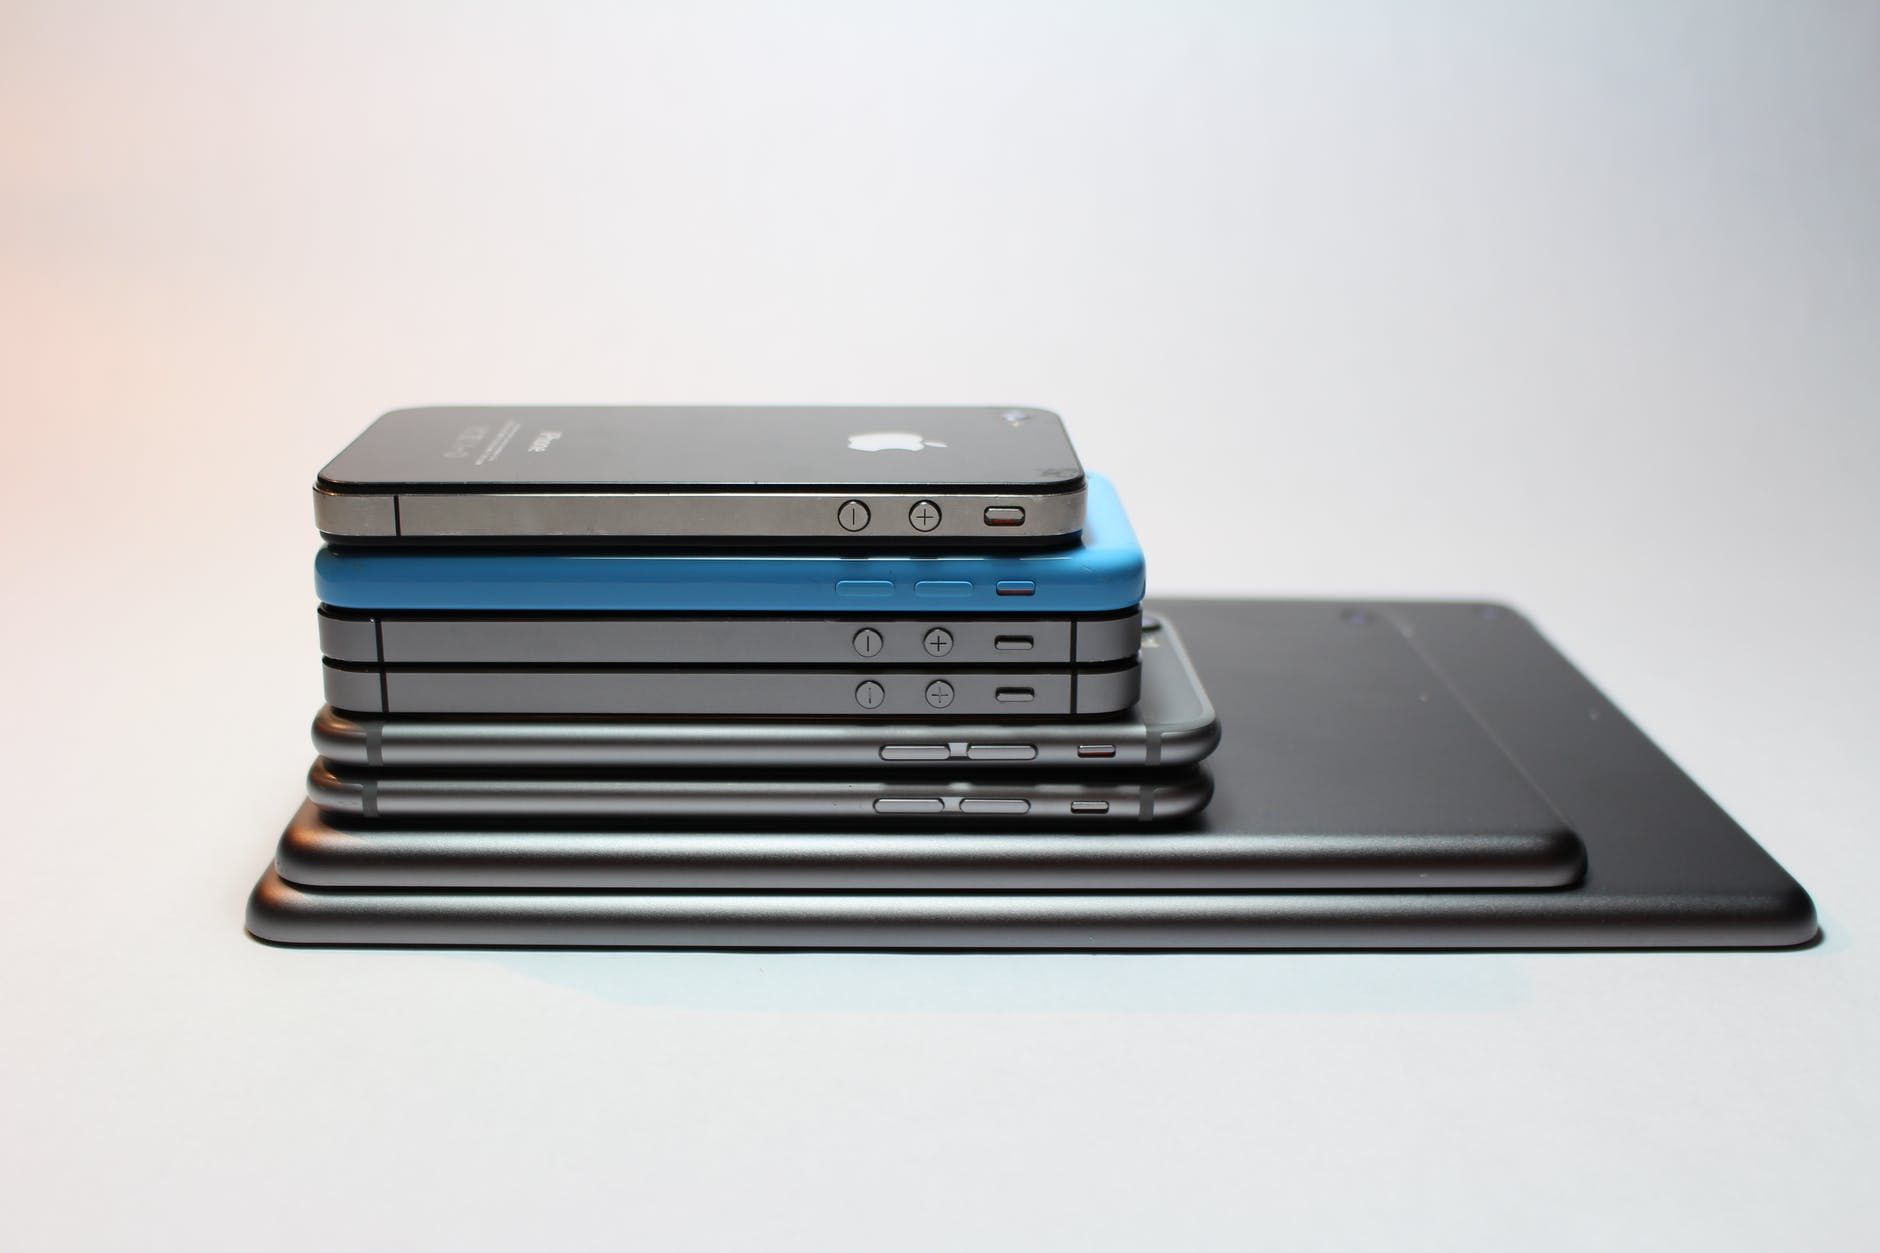 A pile of iPhones stacked up on each other